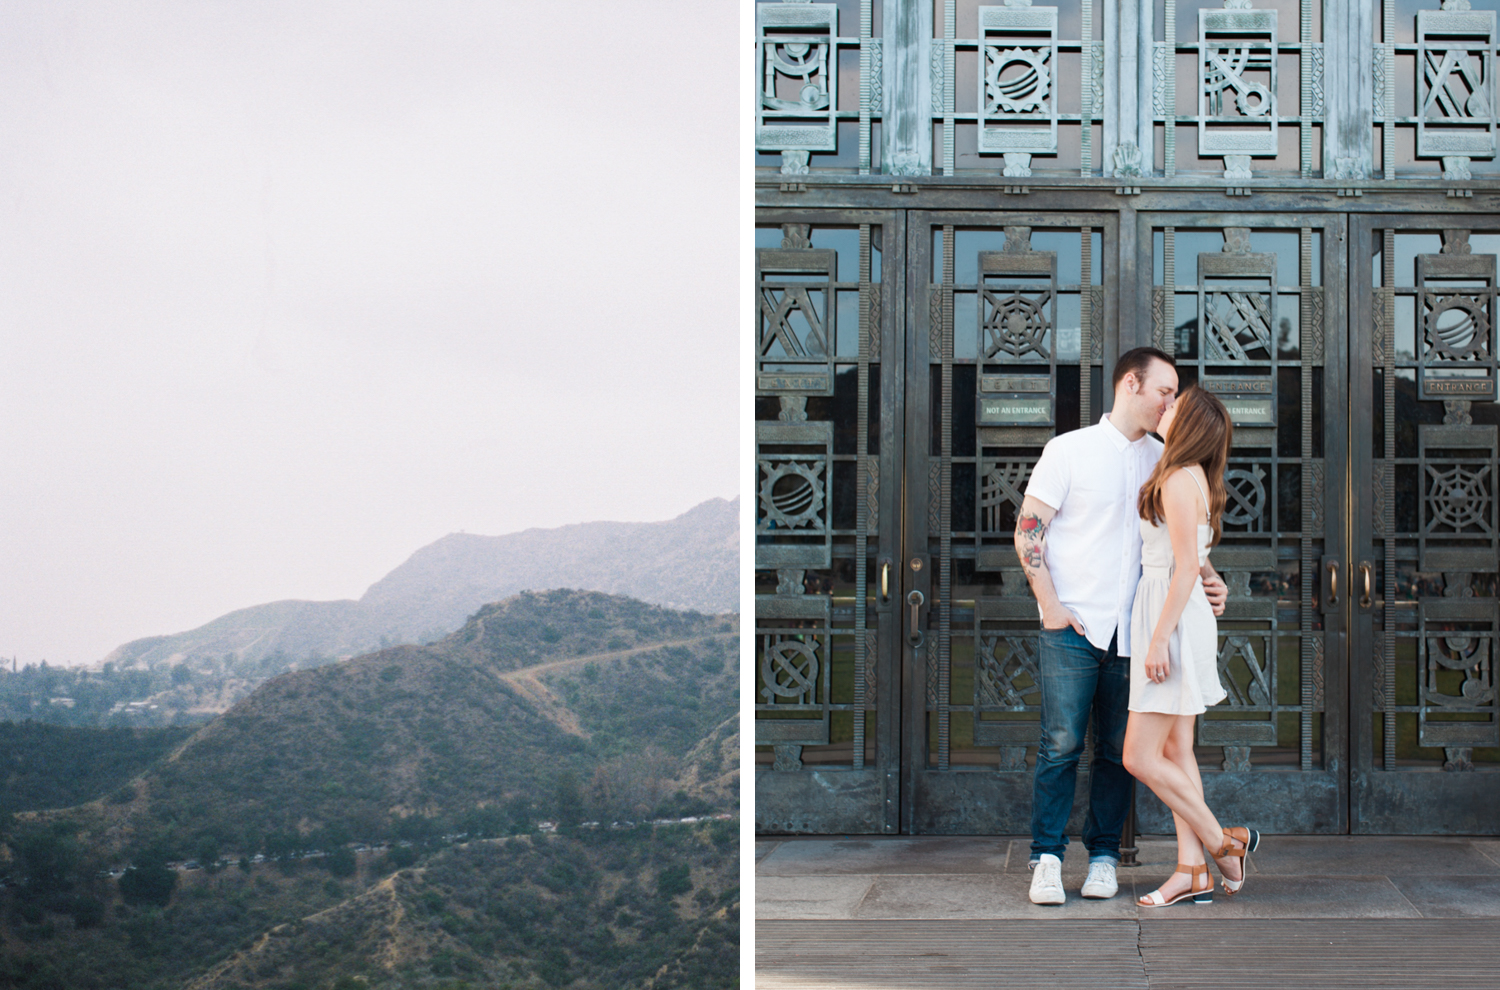 kateweinsteinphoto_sarahnick_griffithobservatory_la_engagement_film_wedding_photographer.jpg